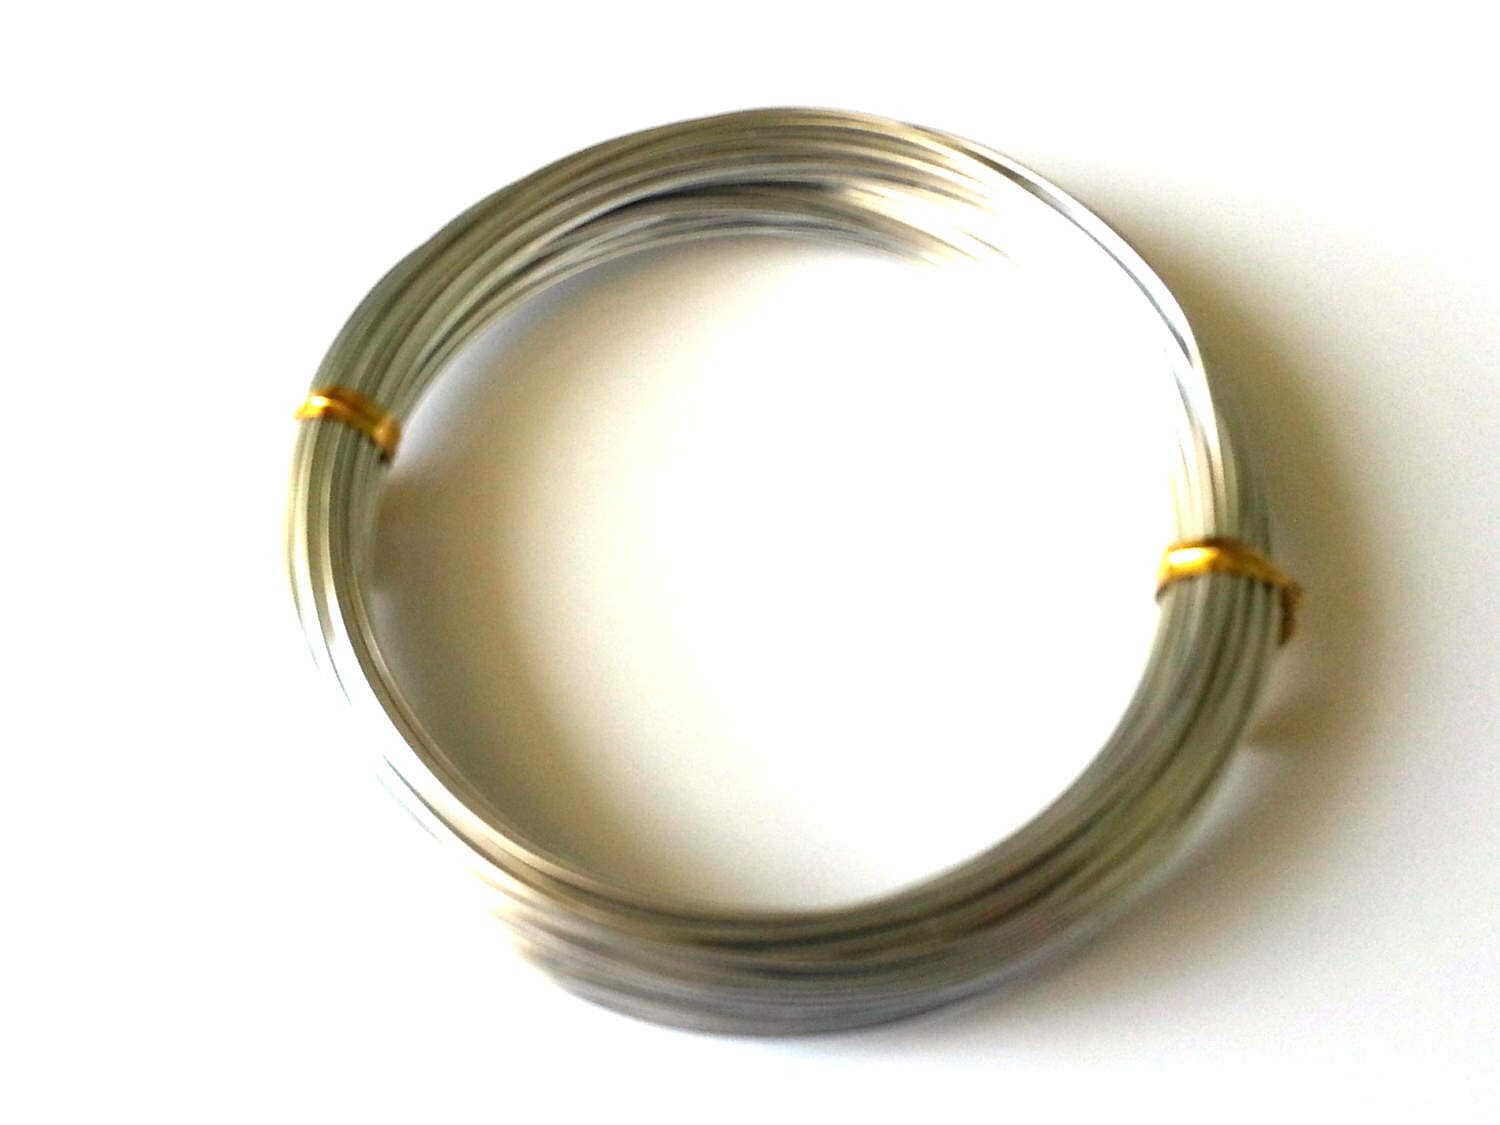 Aluminium wire 1mm - 18 gauge wire - 20 metres - gold wire - silver ...